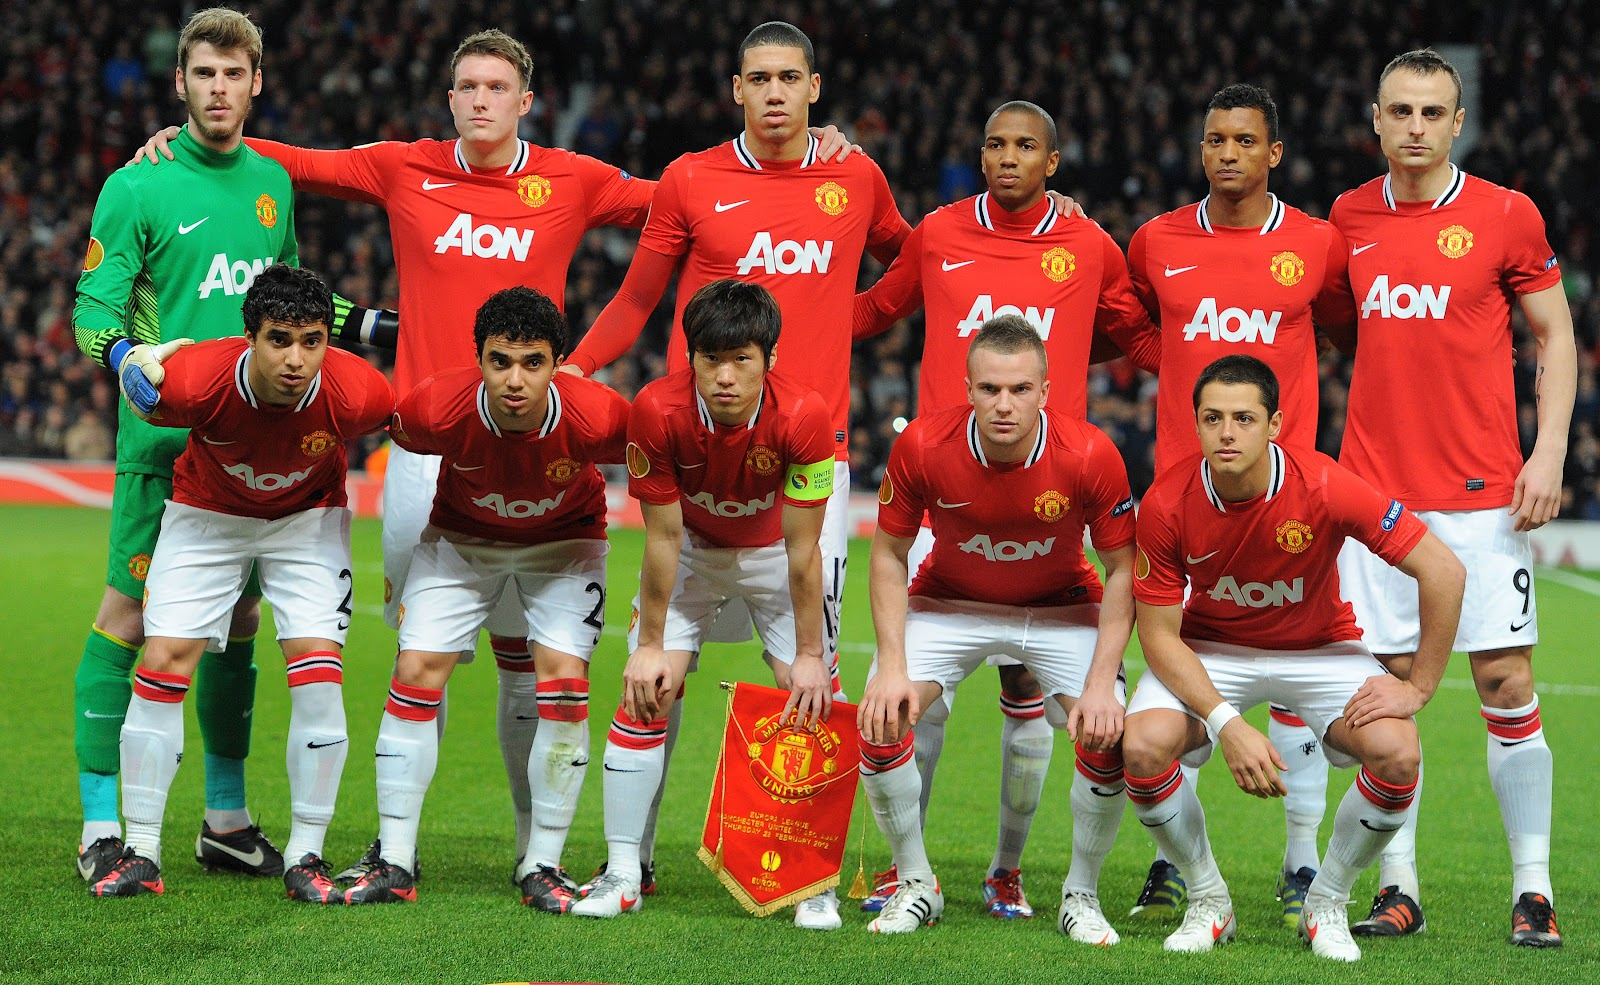 http://3.bp.blogspot.com/-aB4mAy0CD9s/UIGBygxBIOI/AAAAAAAAFrk/fRLsfP5KAvU/s1600/Manchester+United+hd+Wallpaper+2012-2013+03.jpg